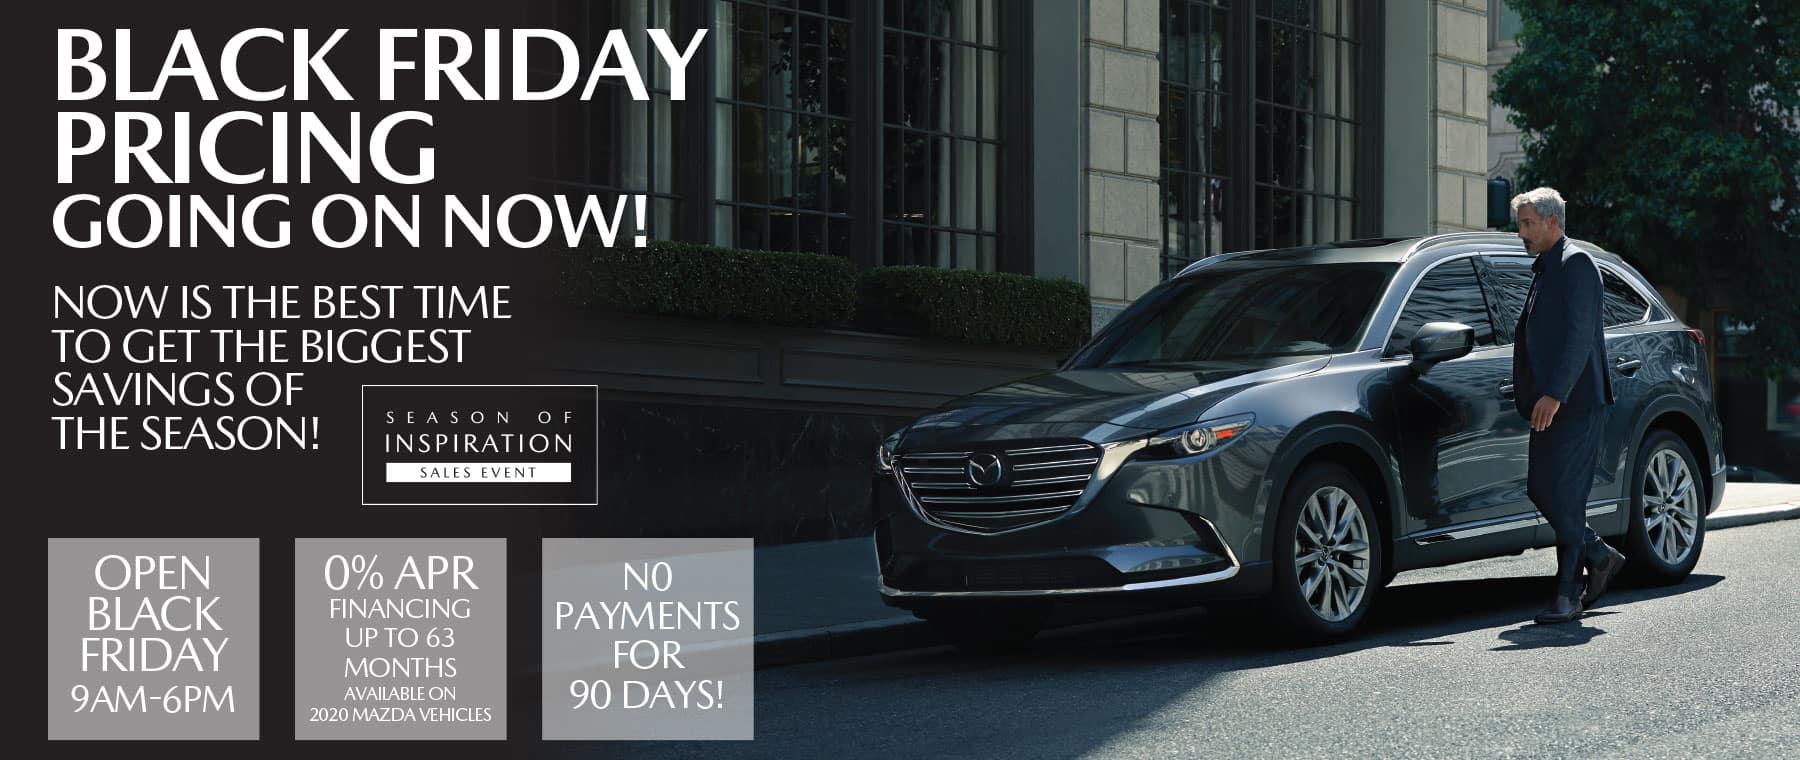 Black Friday Savings Mazda of New Rochelle NY